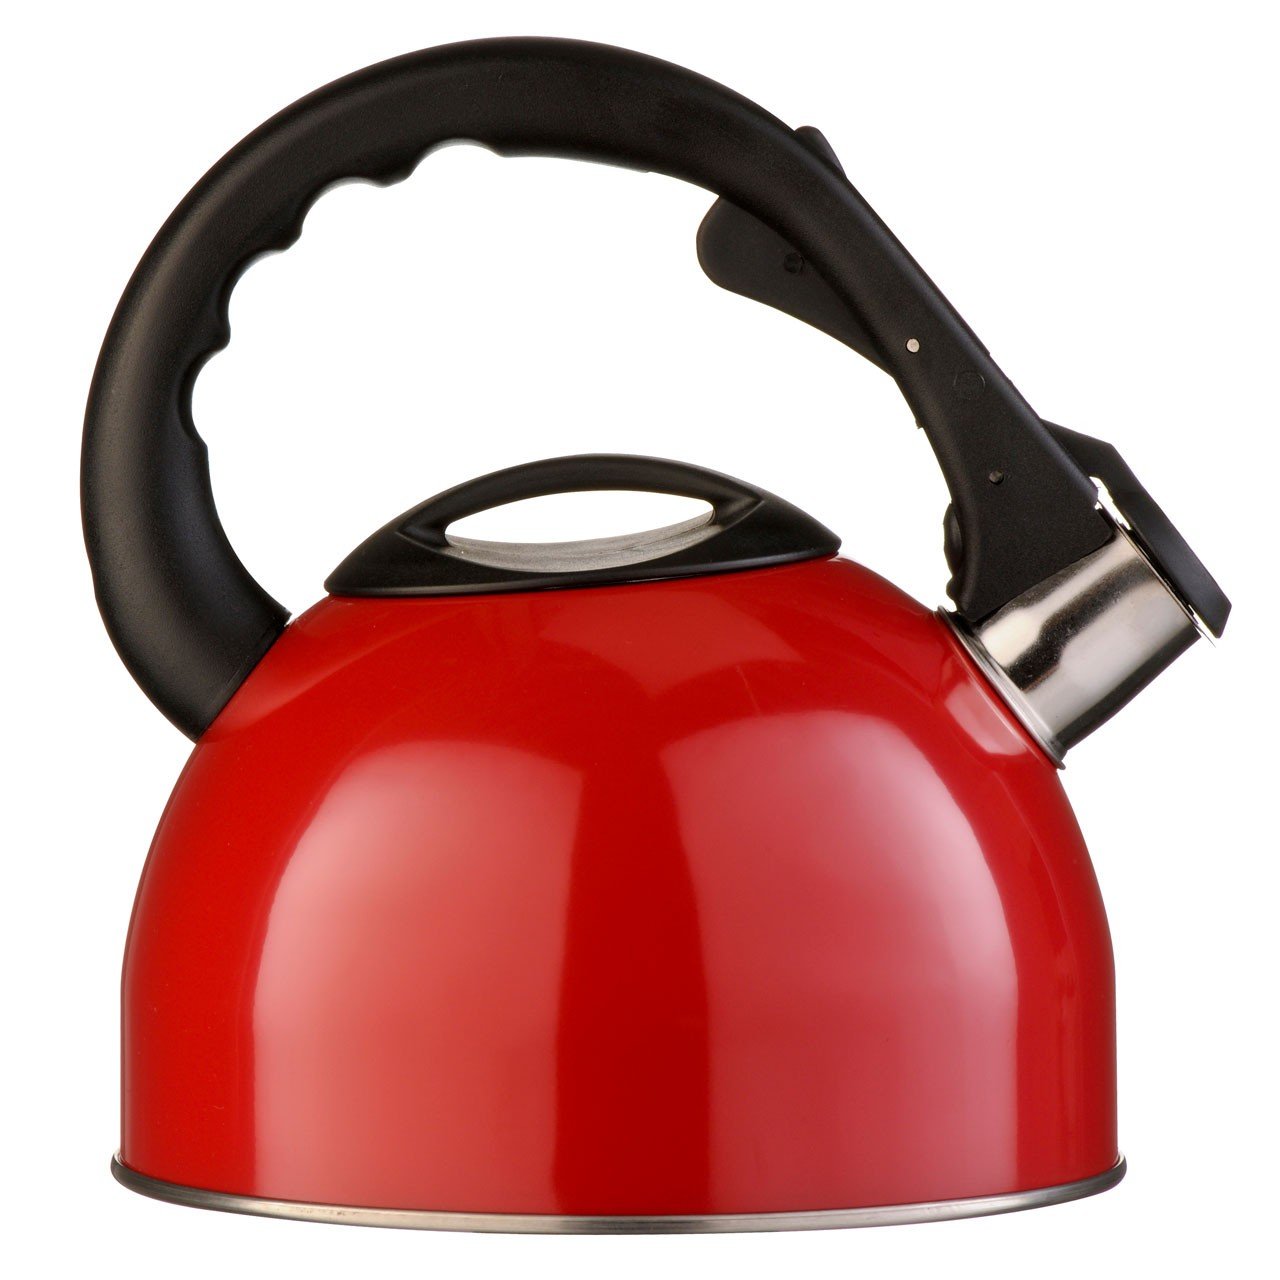 Whistling Kettle 2.5Ltr Red And Made Of Stainless Steel